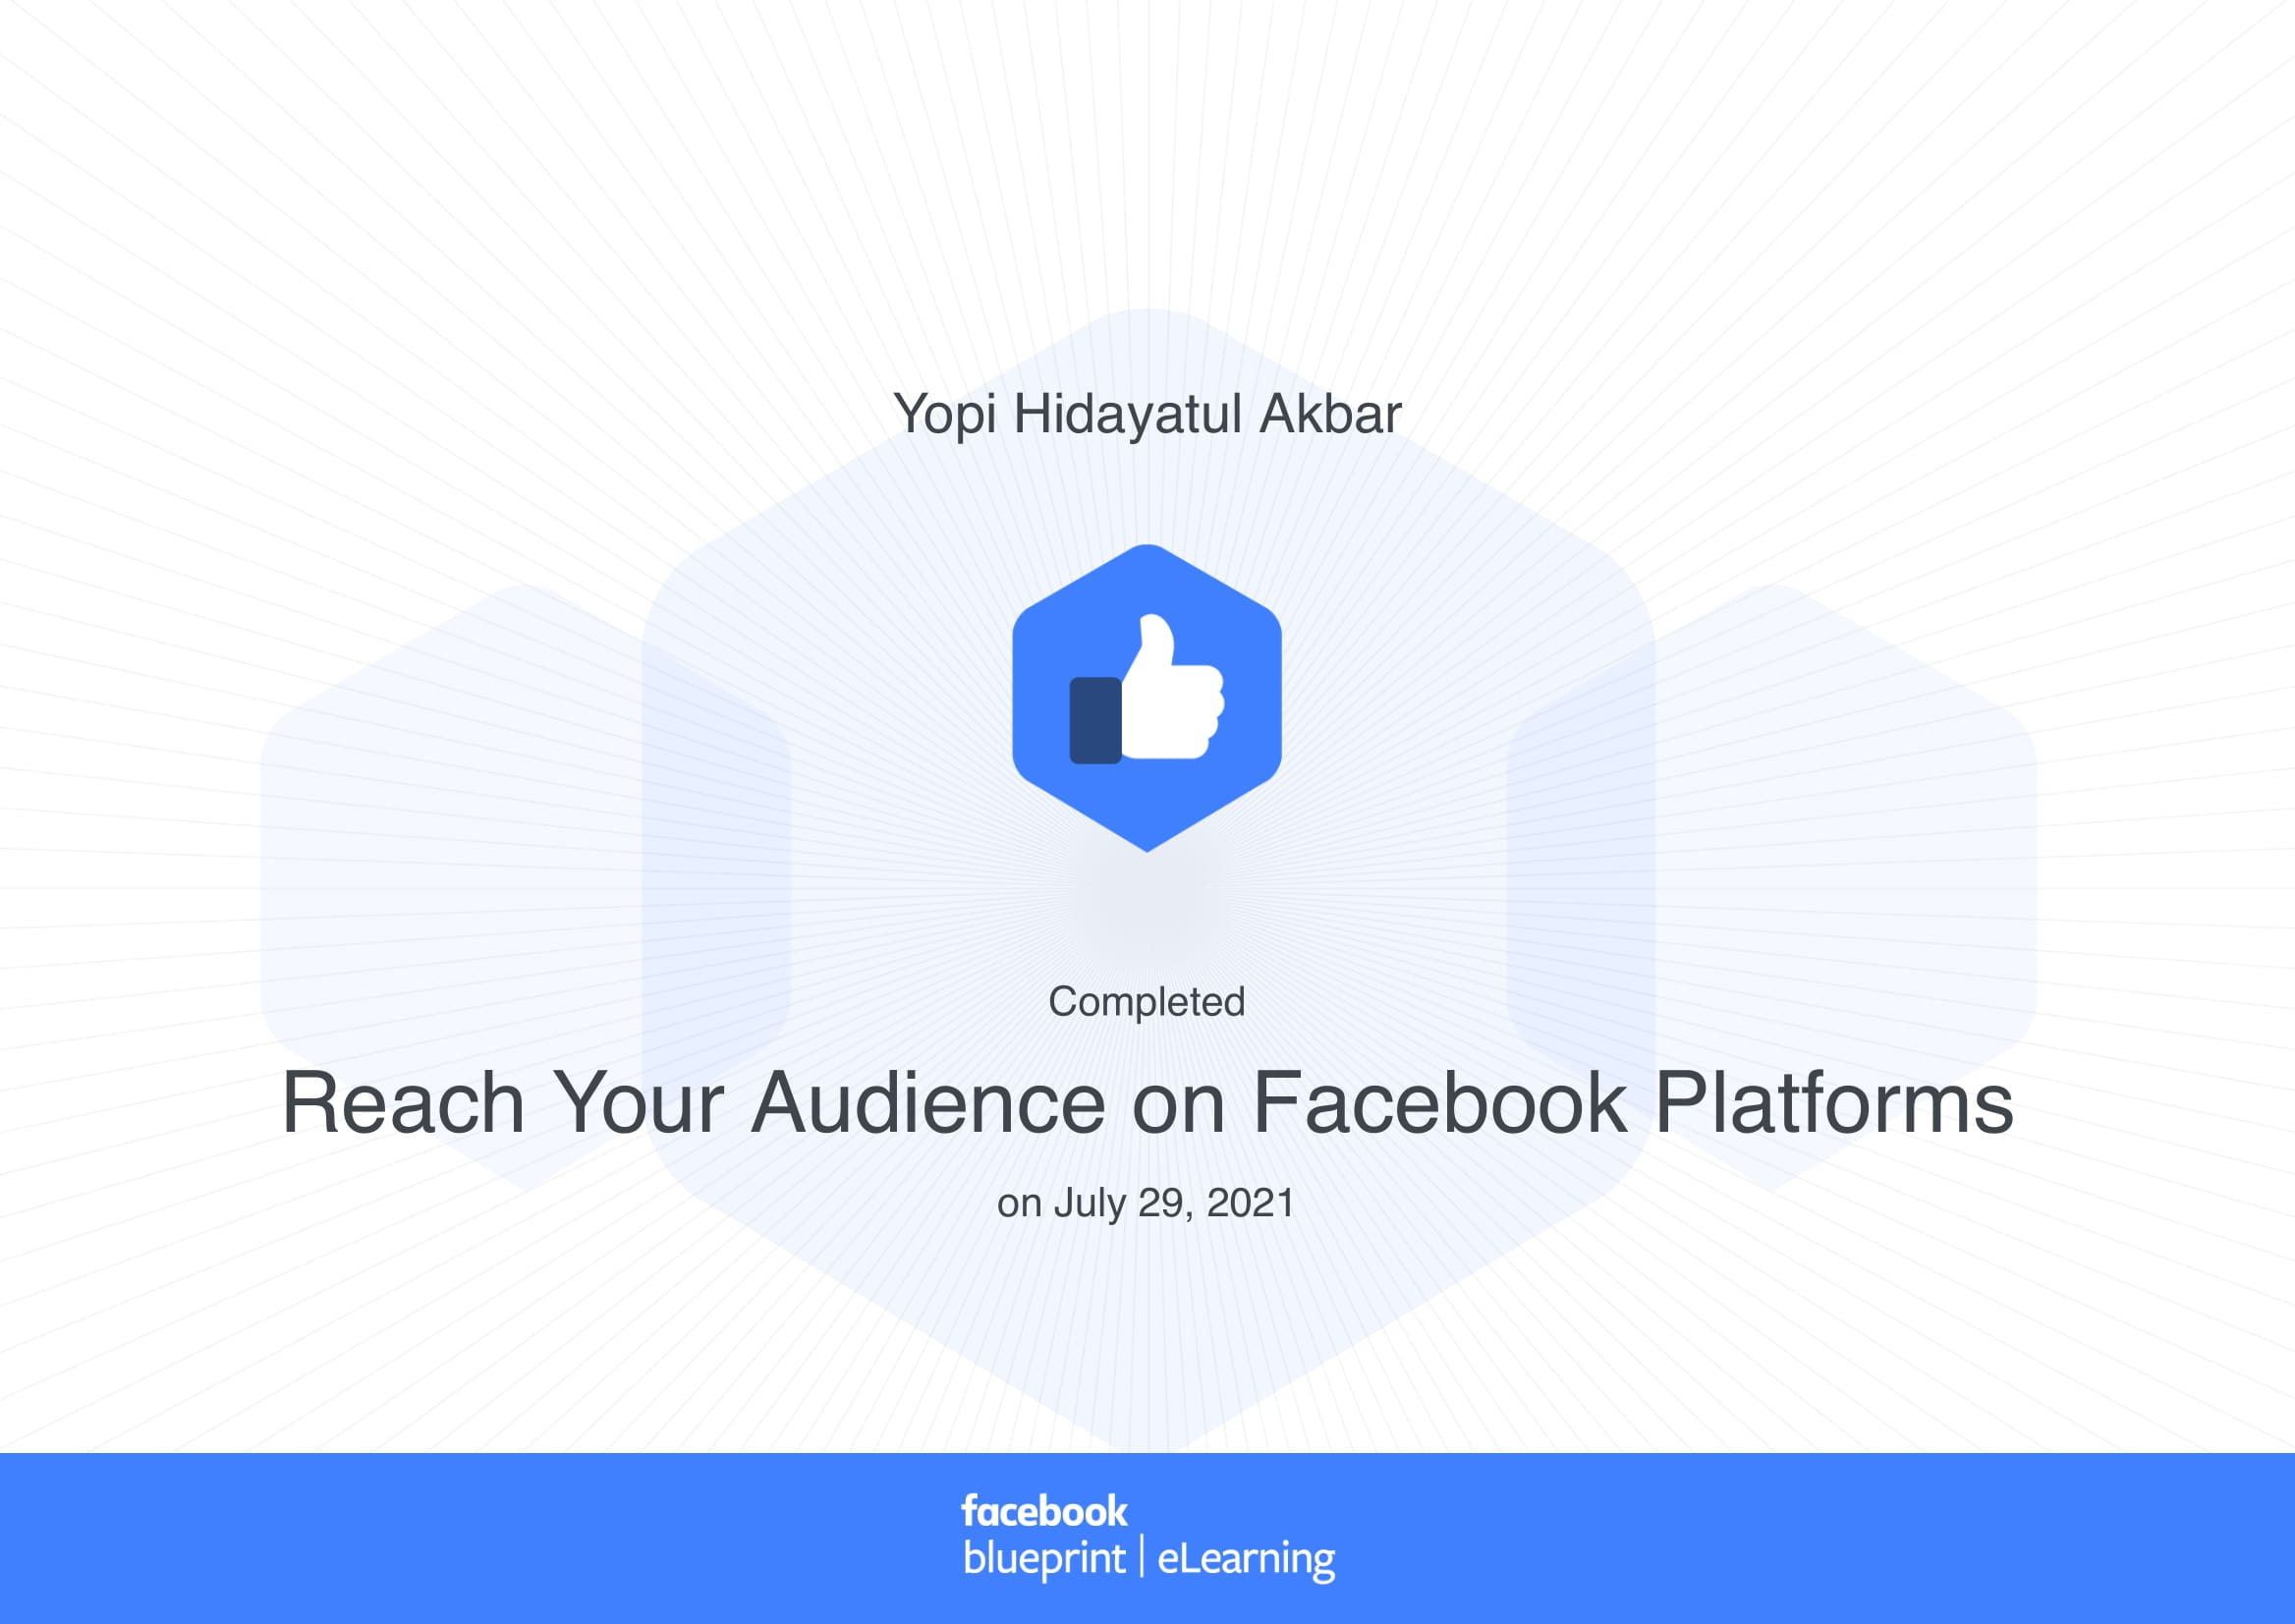 Reach Your Audience on Facebook Platforms _ Learn new skills to build your brand or business-1